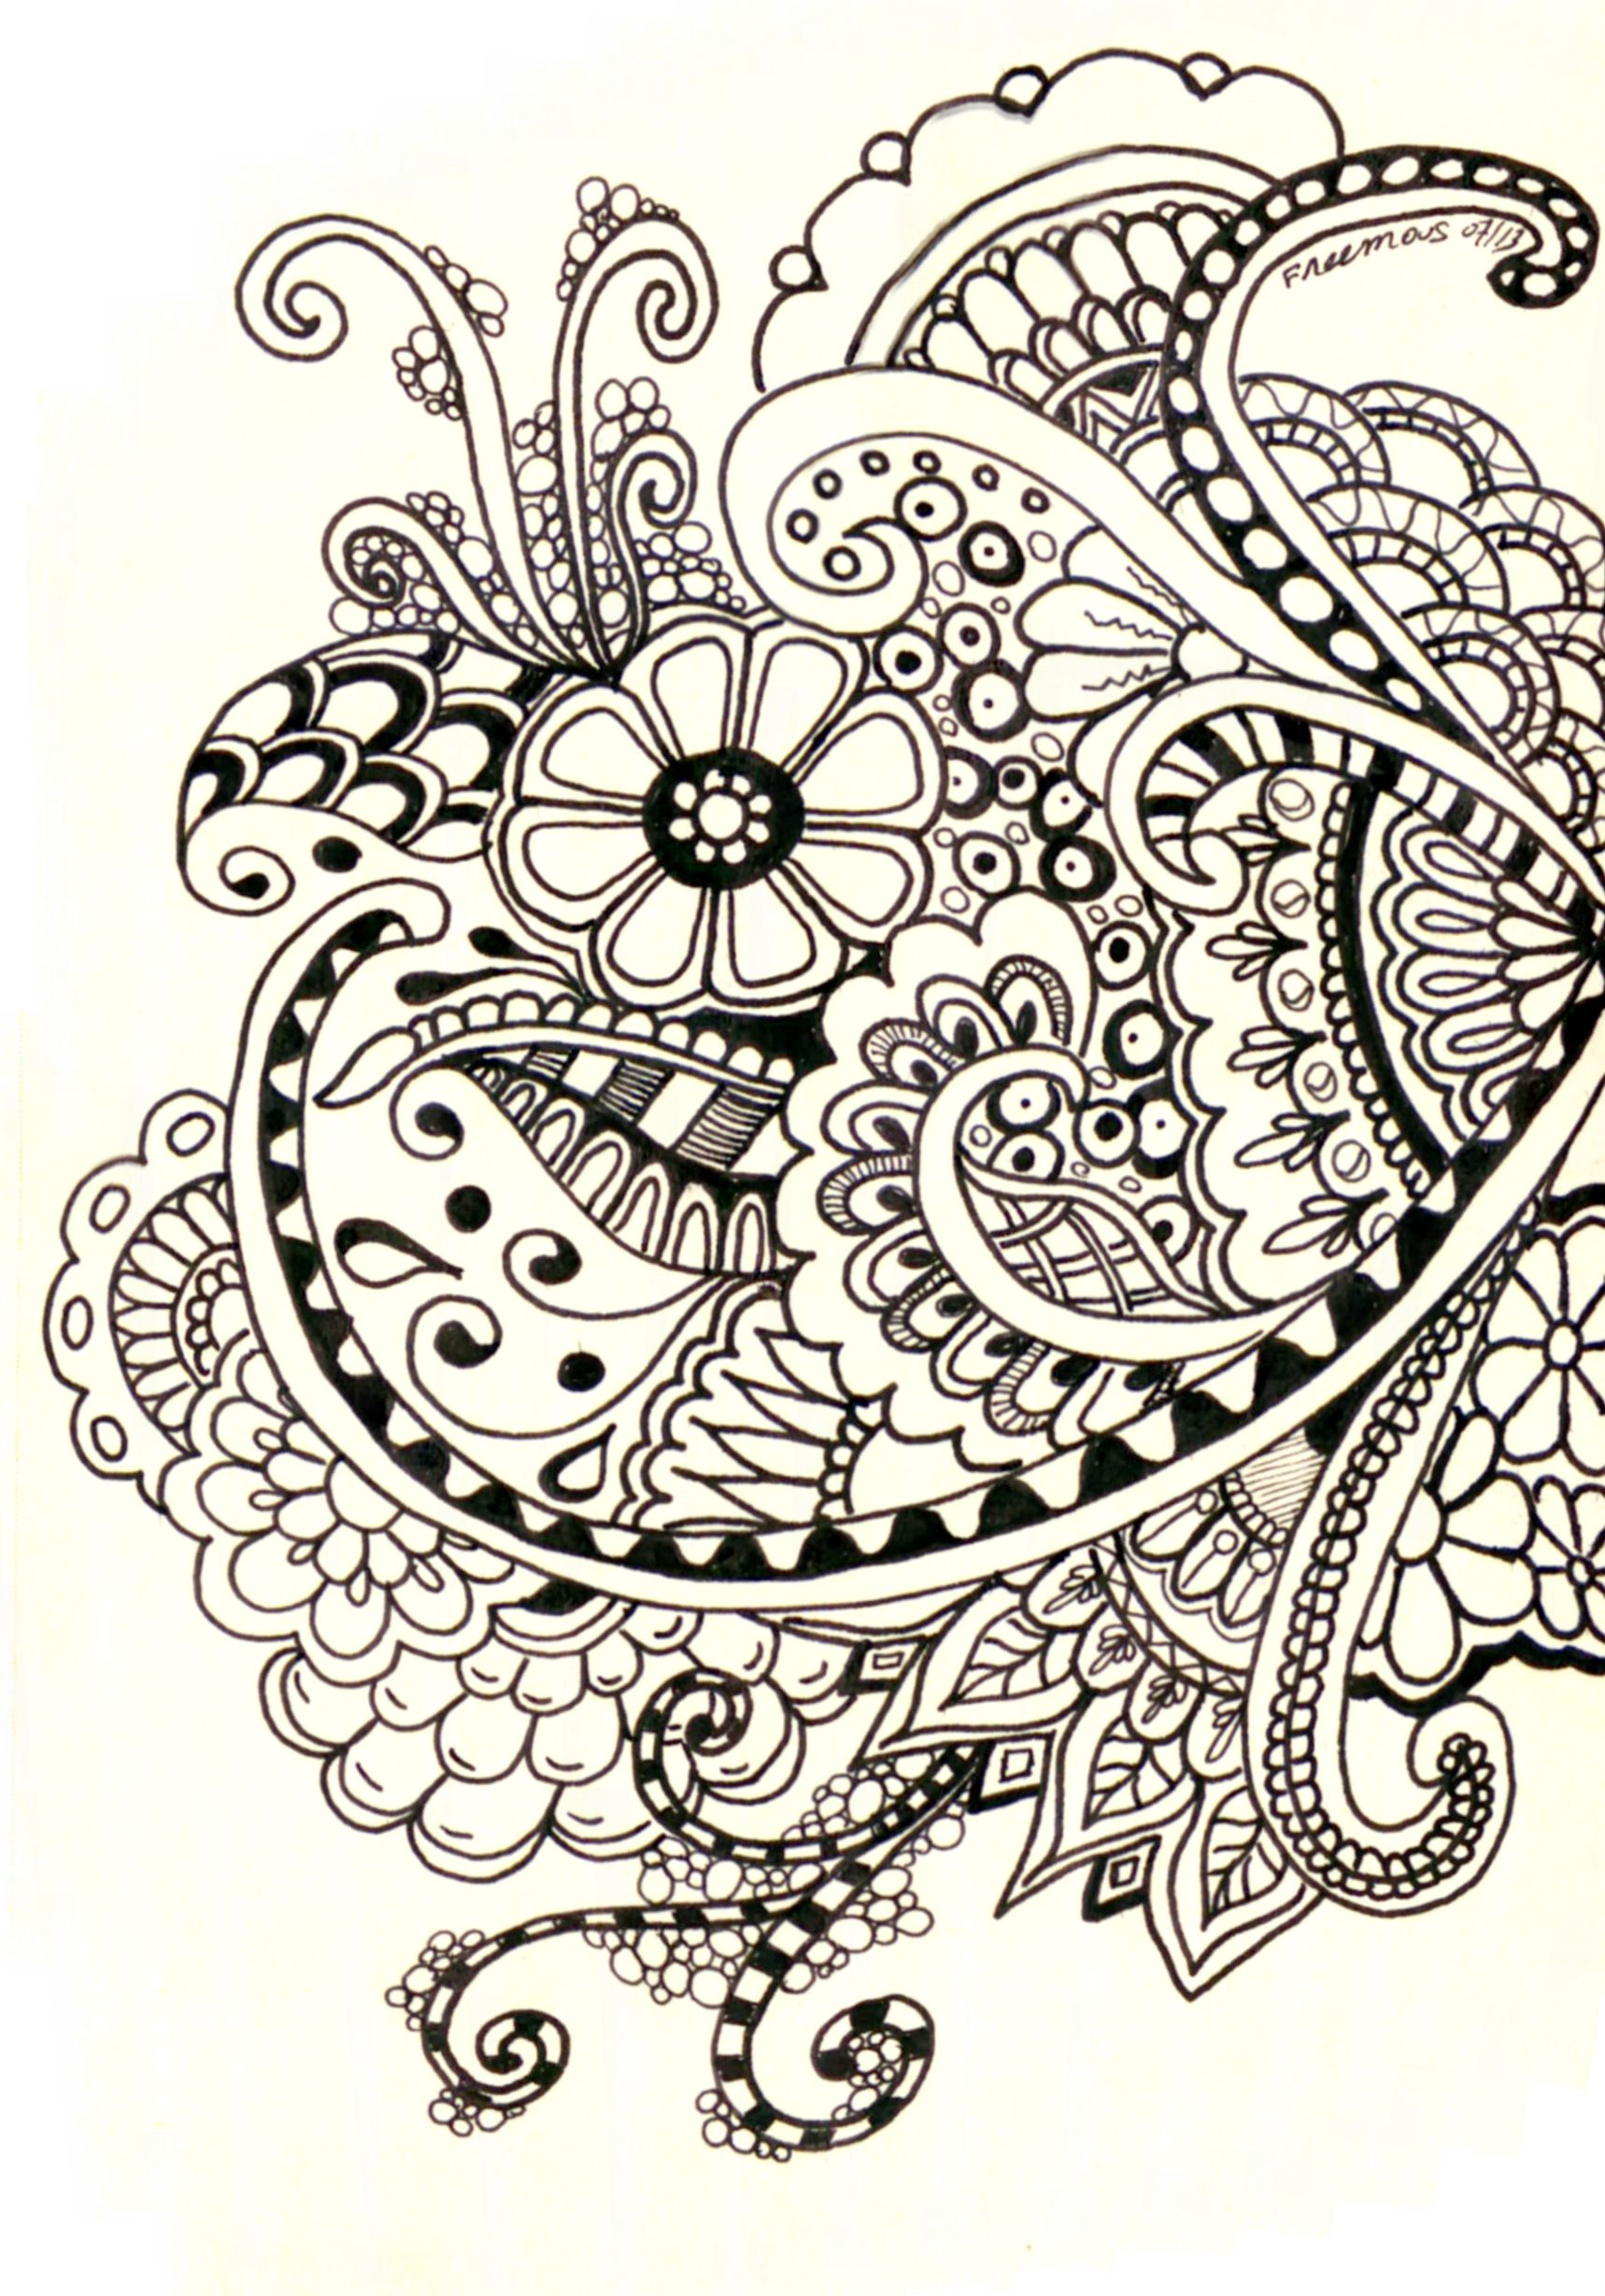 Mehndi Flower Chadar : Zentangle henna designs h basics practise on paper